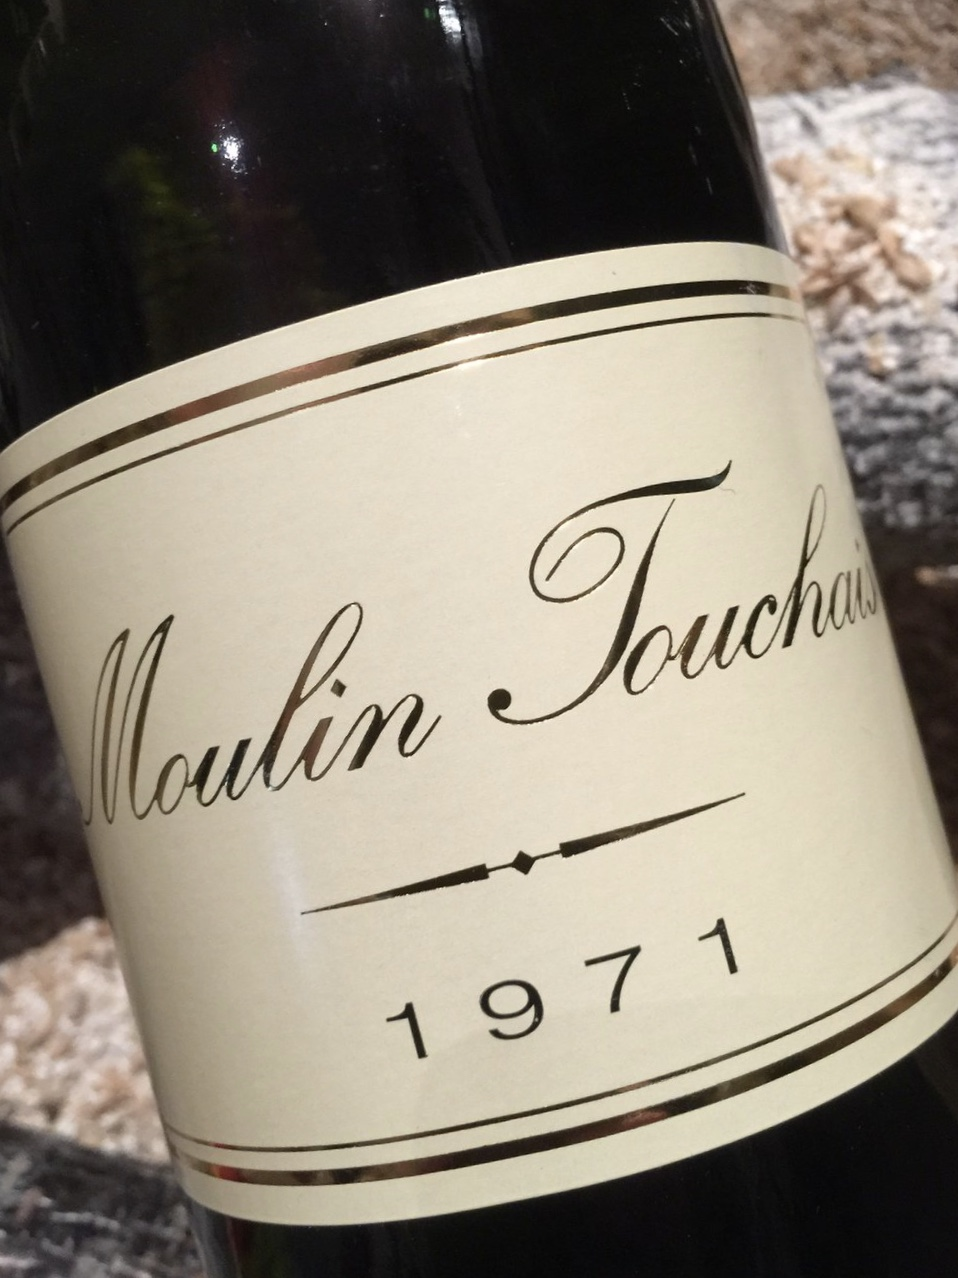 Moulin Touchais 1971